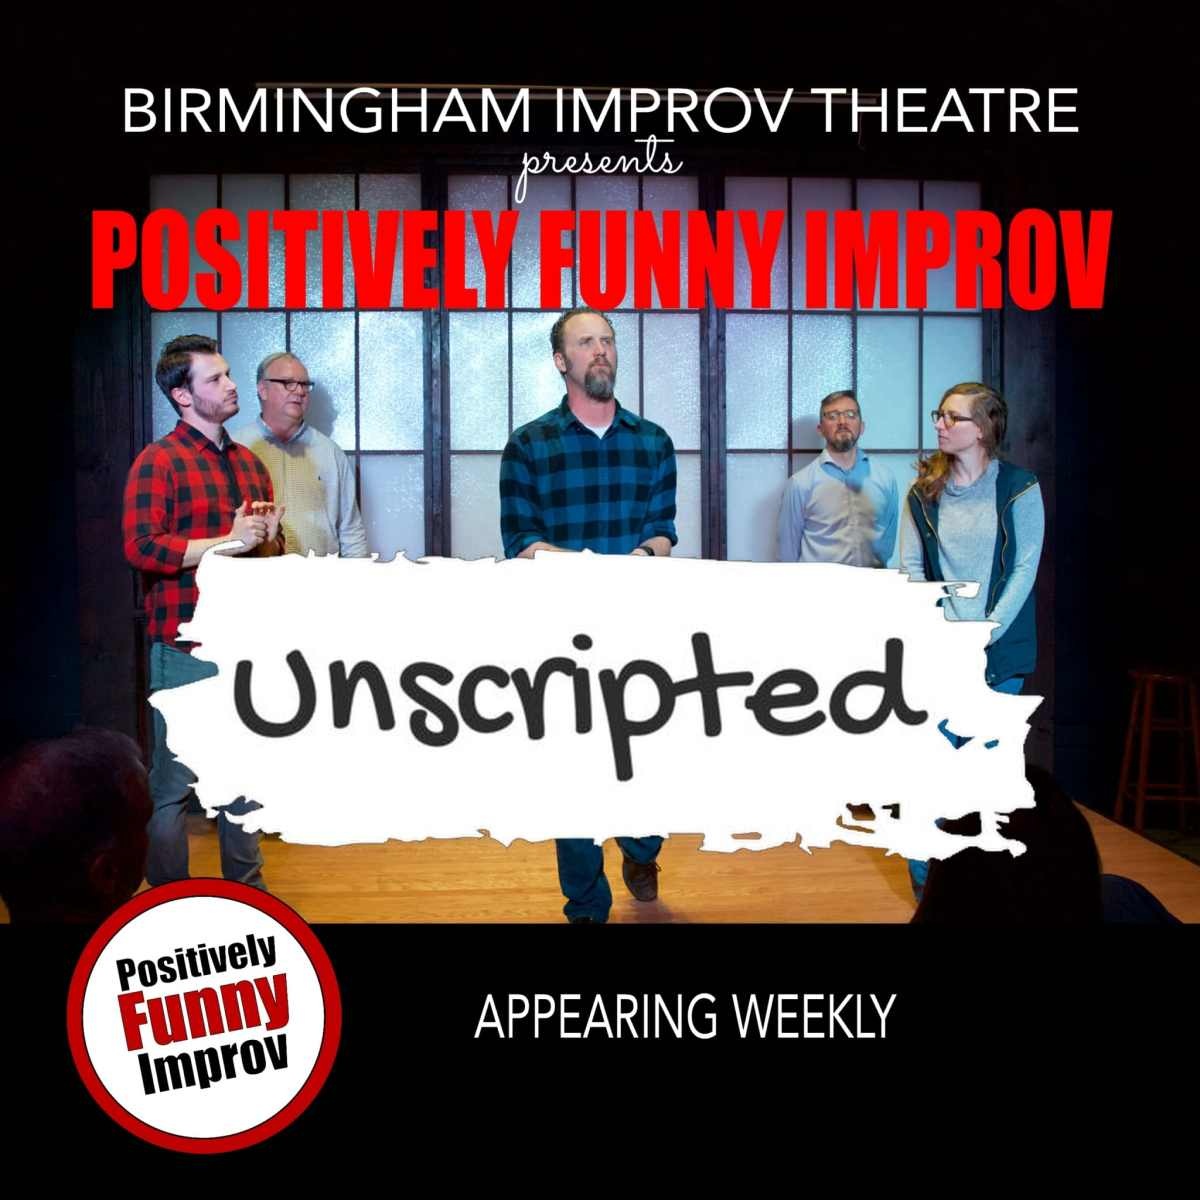 Positively Funny Improv Unscripted!